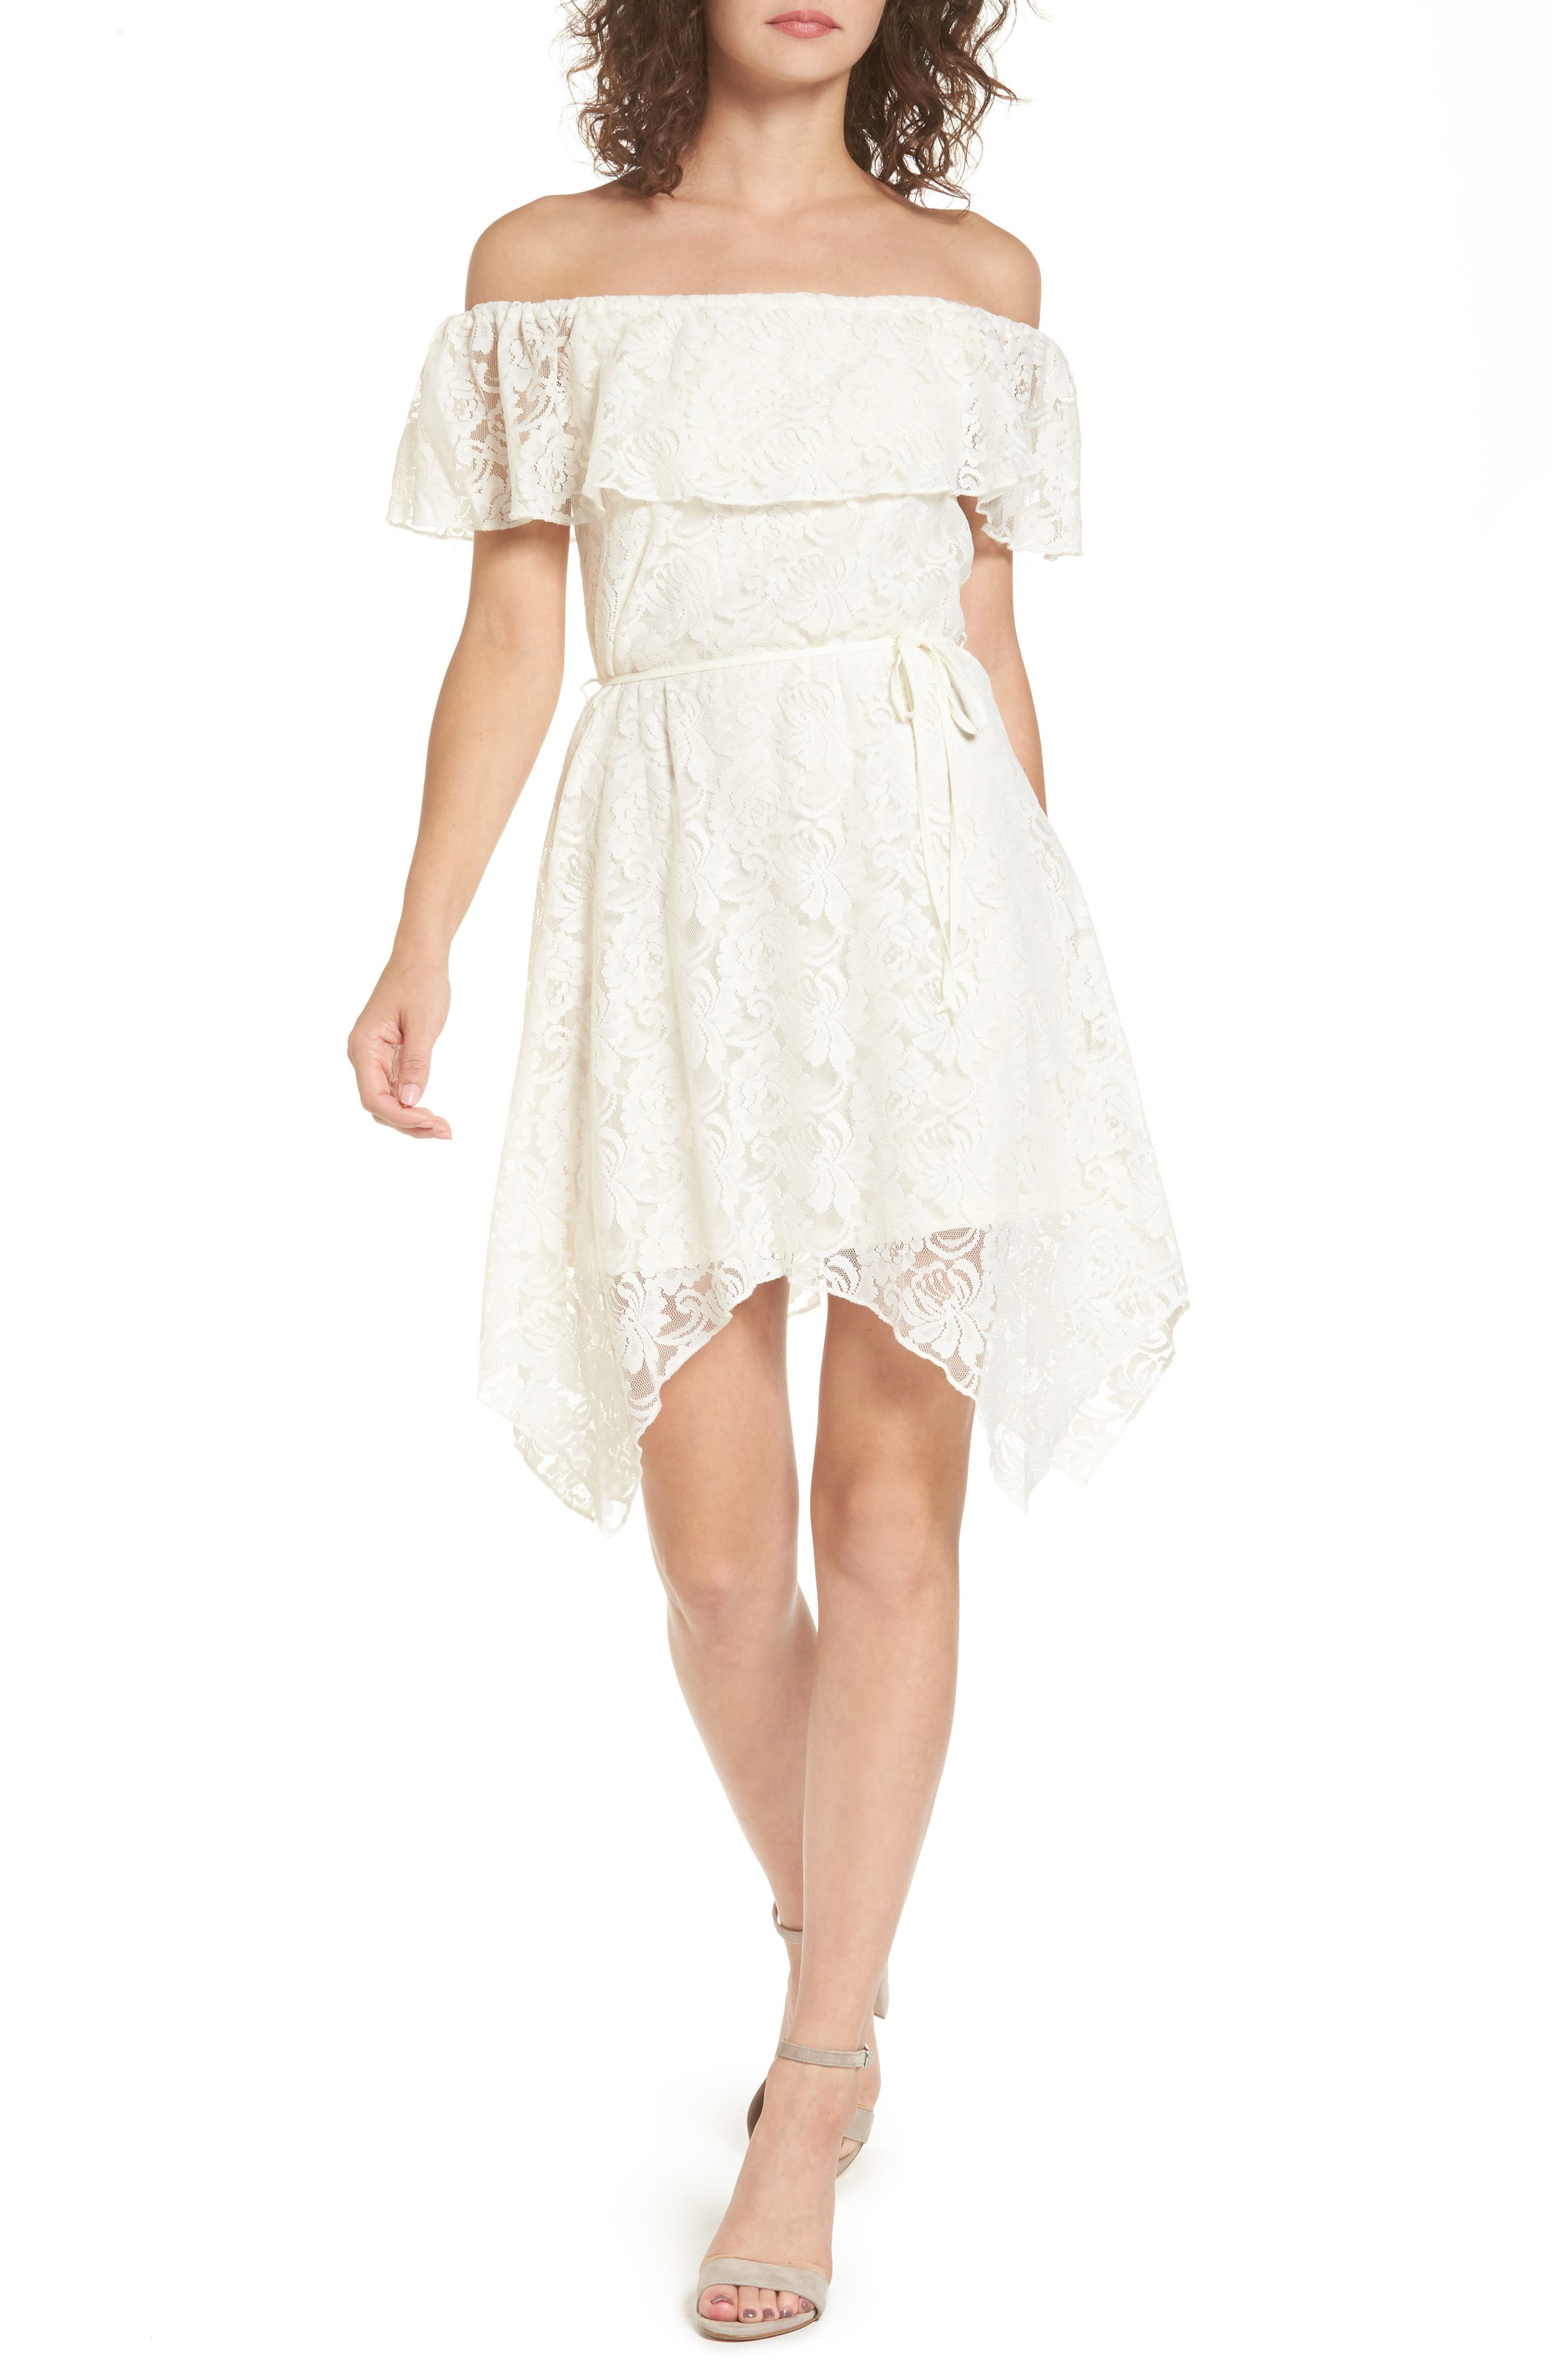 AS U WISH As You WIsh Off the Shoulder Lace Dress